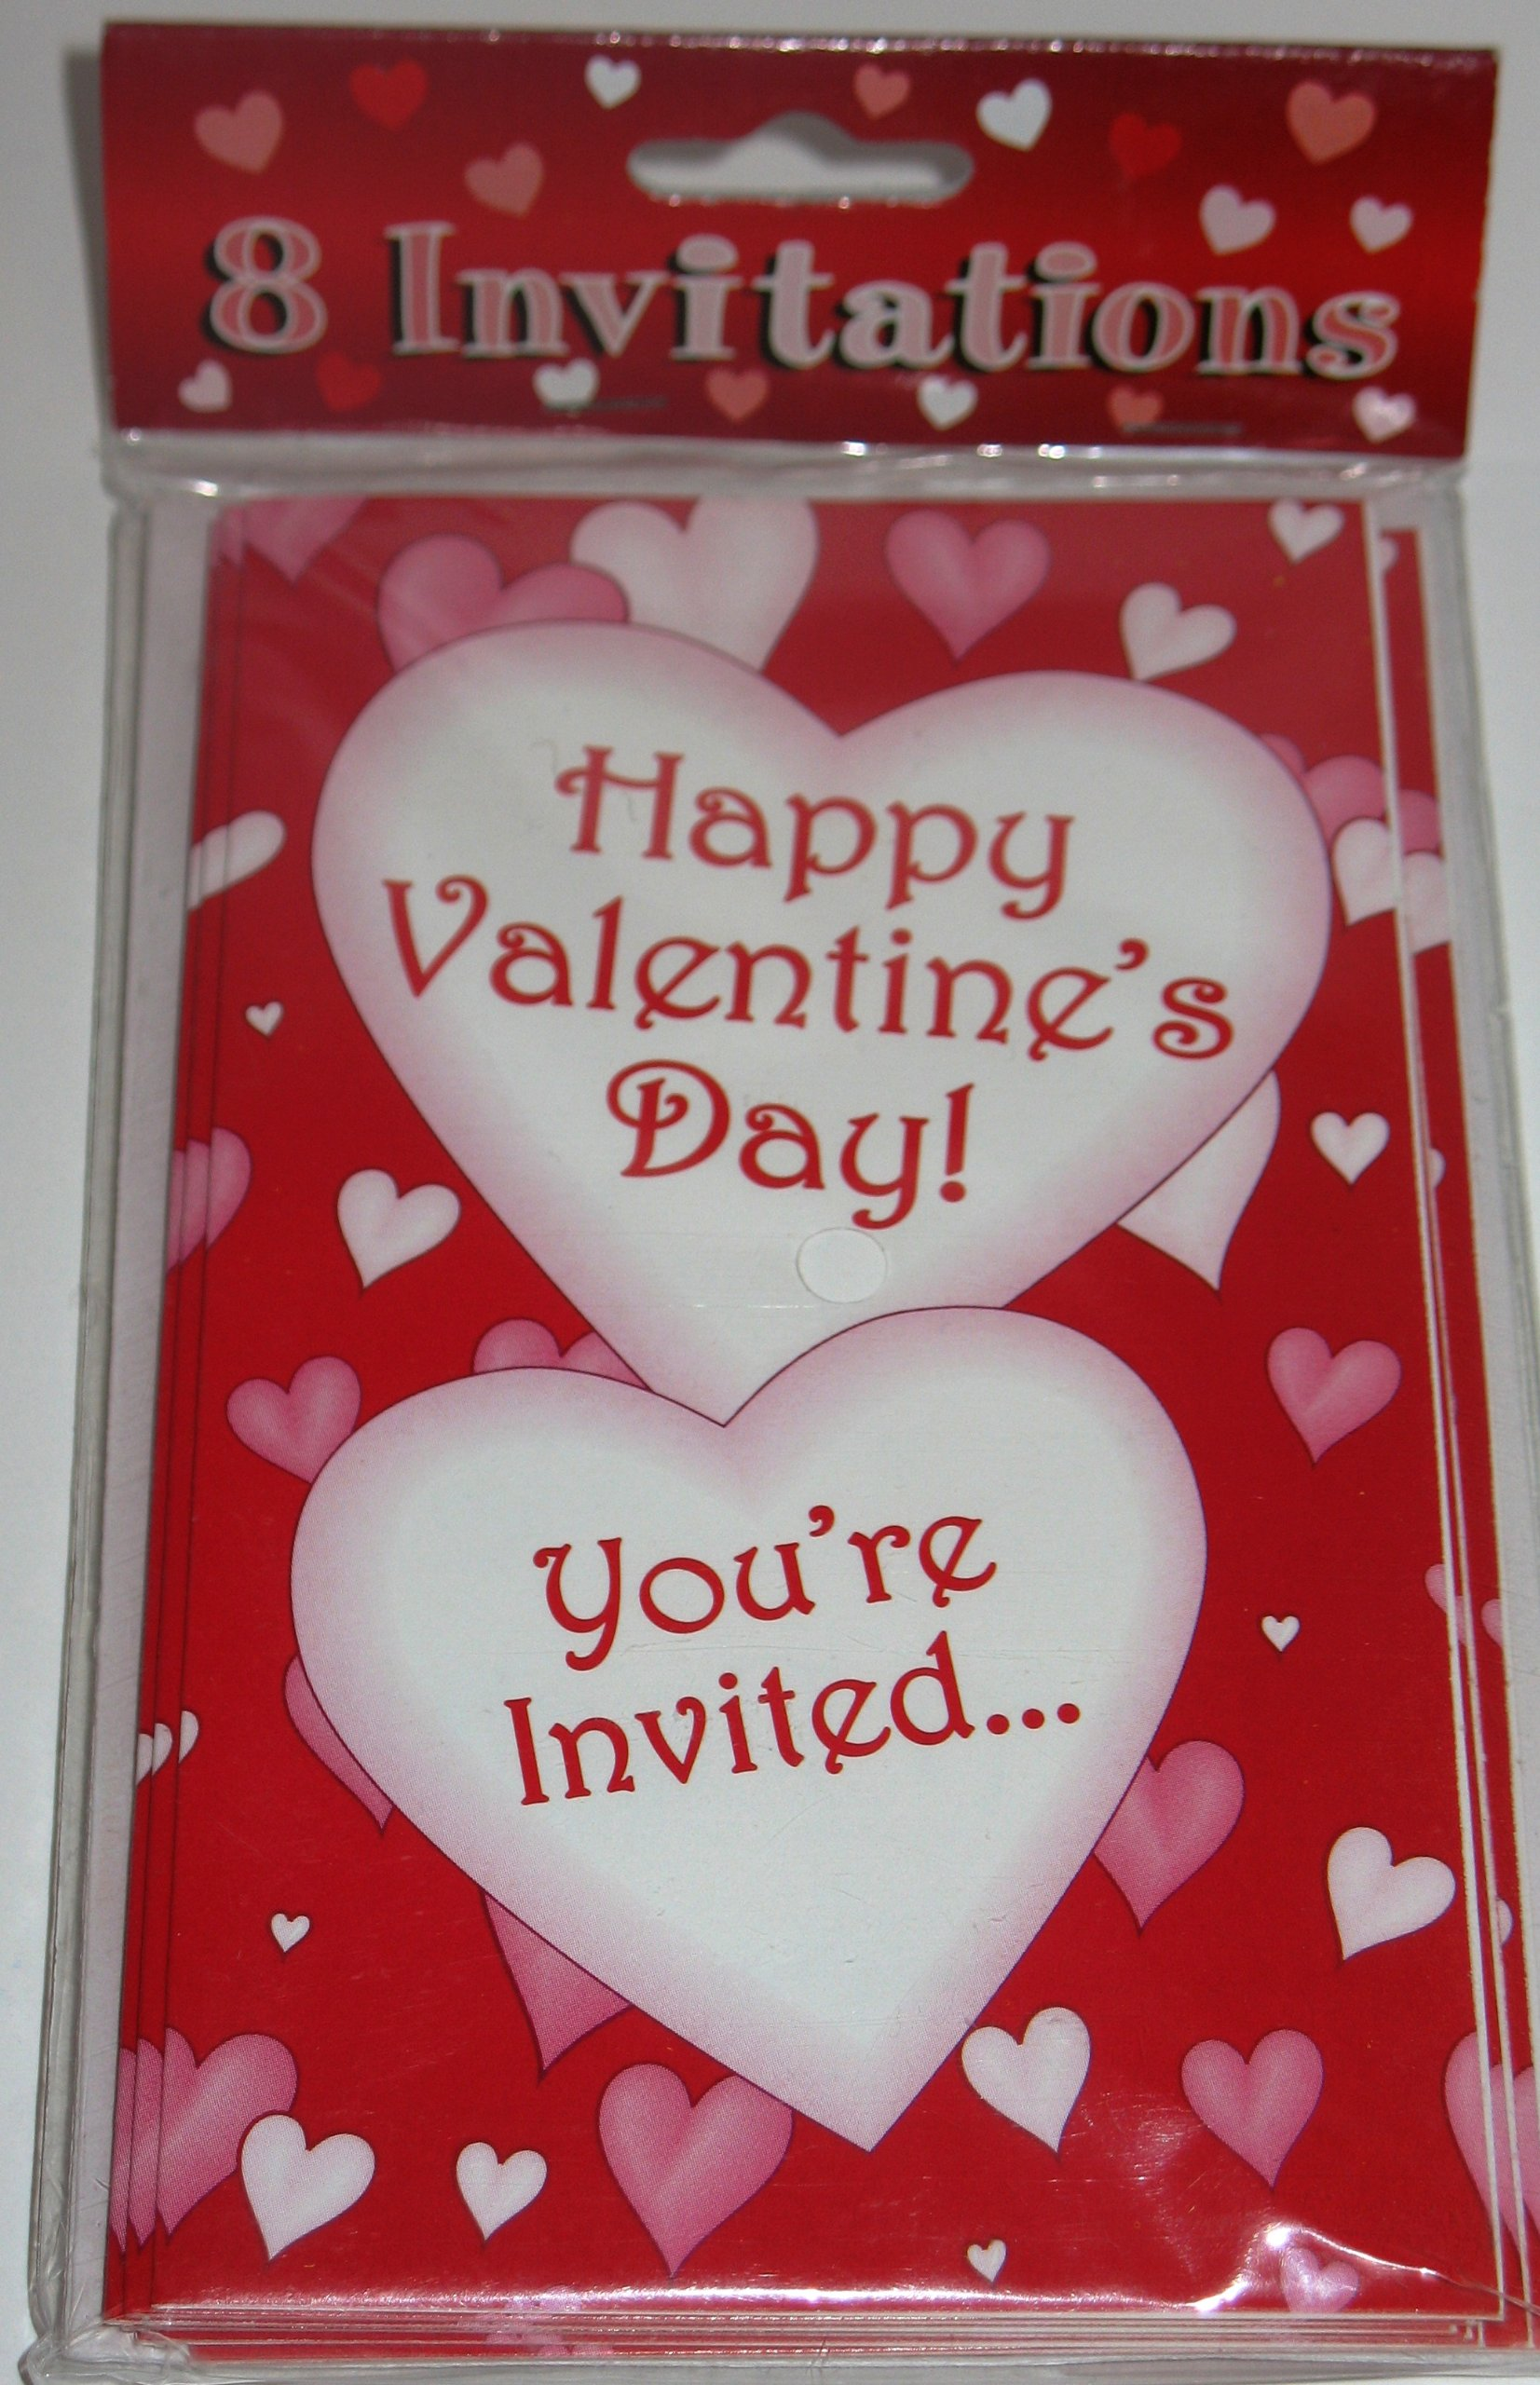 Valentine Day Invitations 8 Pack by Oriental Trading (Image #1)